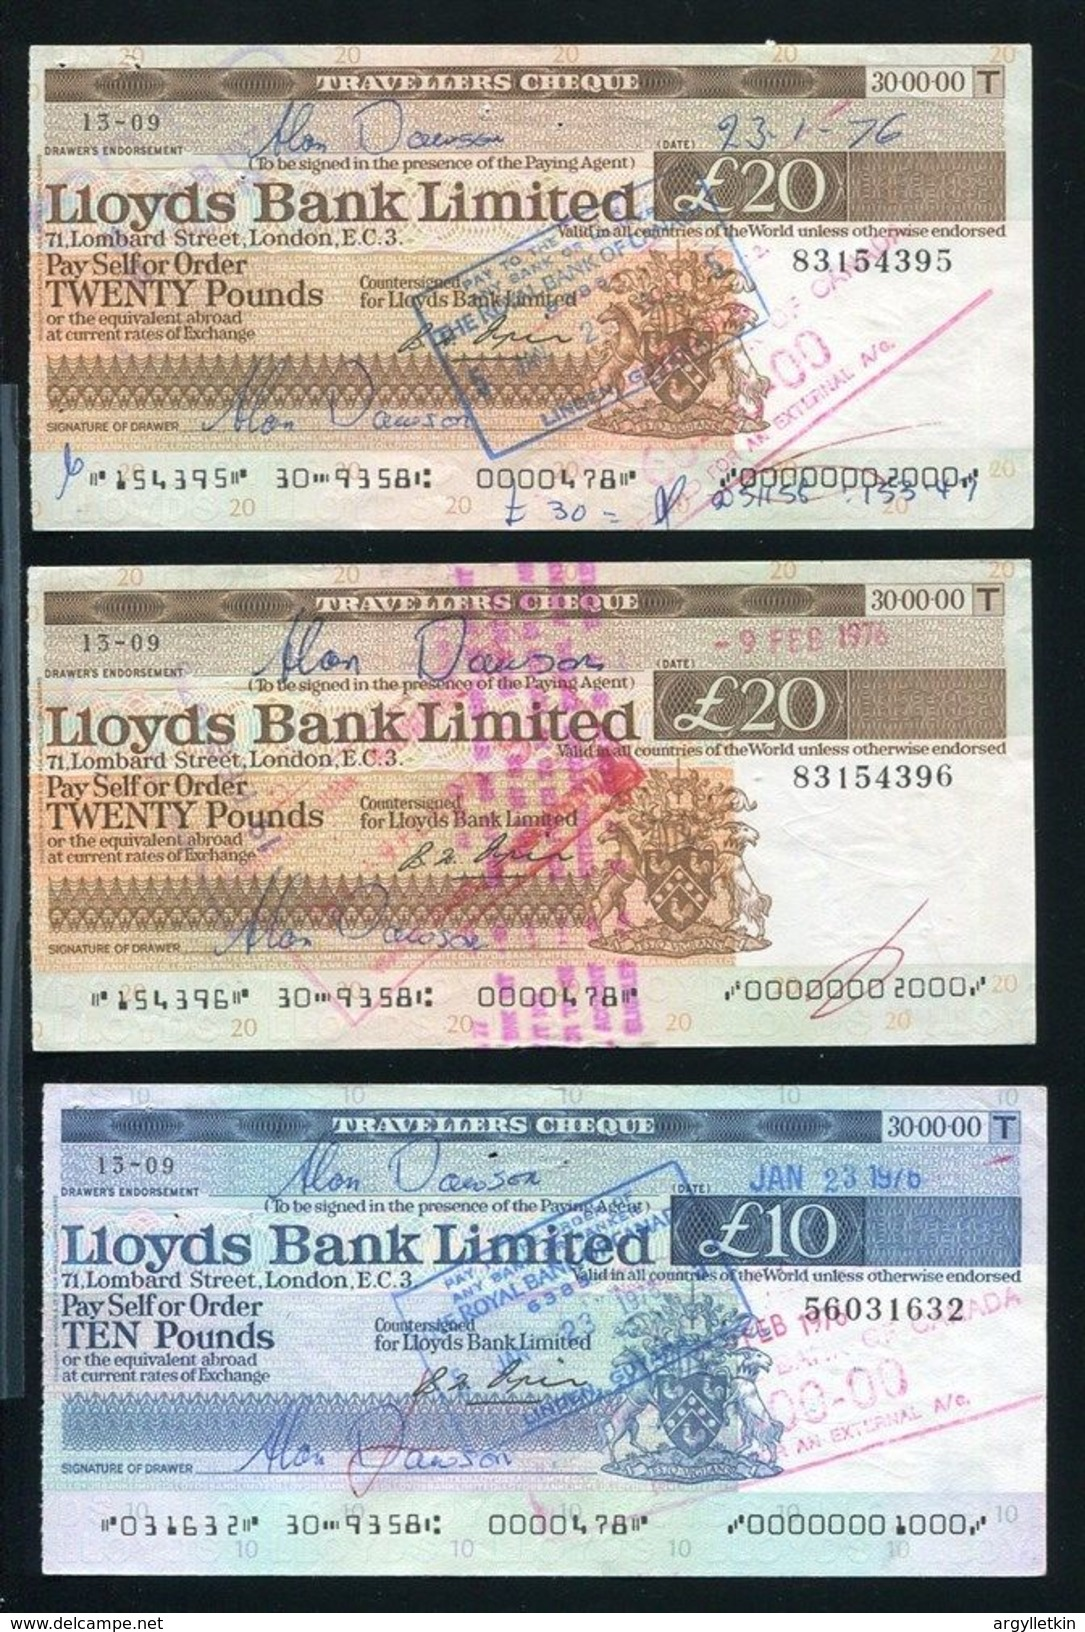 LLOYDS BANK TRAVELLERS CHEQUES BRITISH GUYANA 1976 FLOWERS - Old Paper